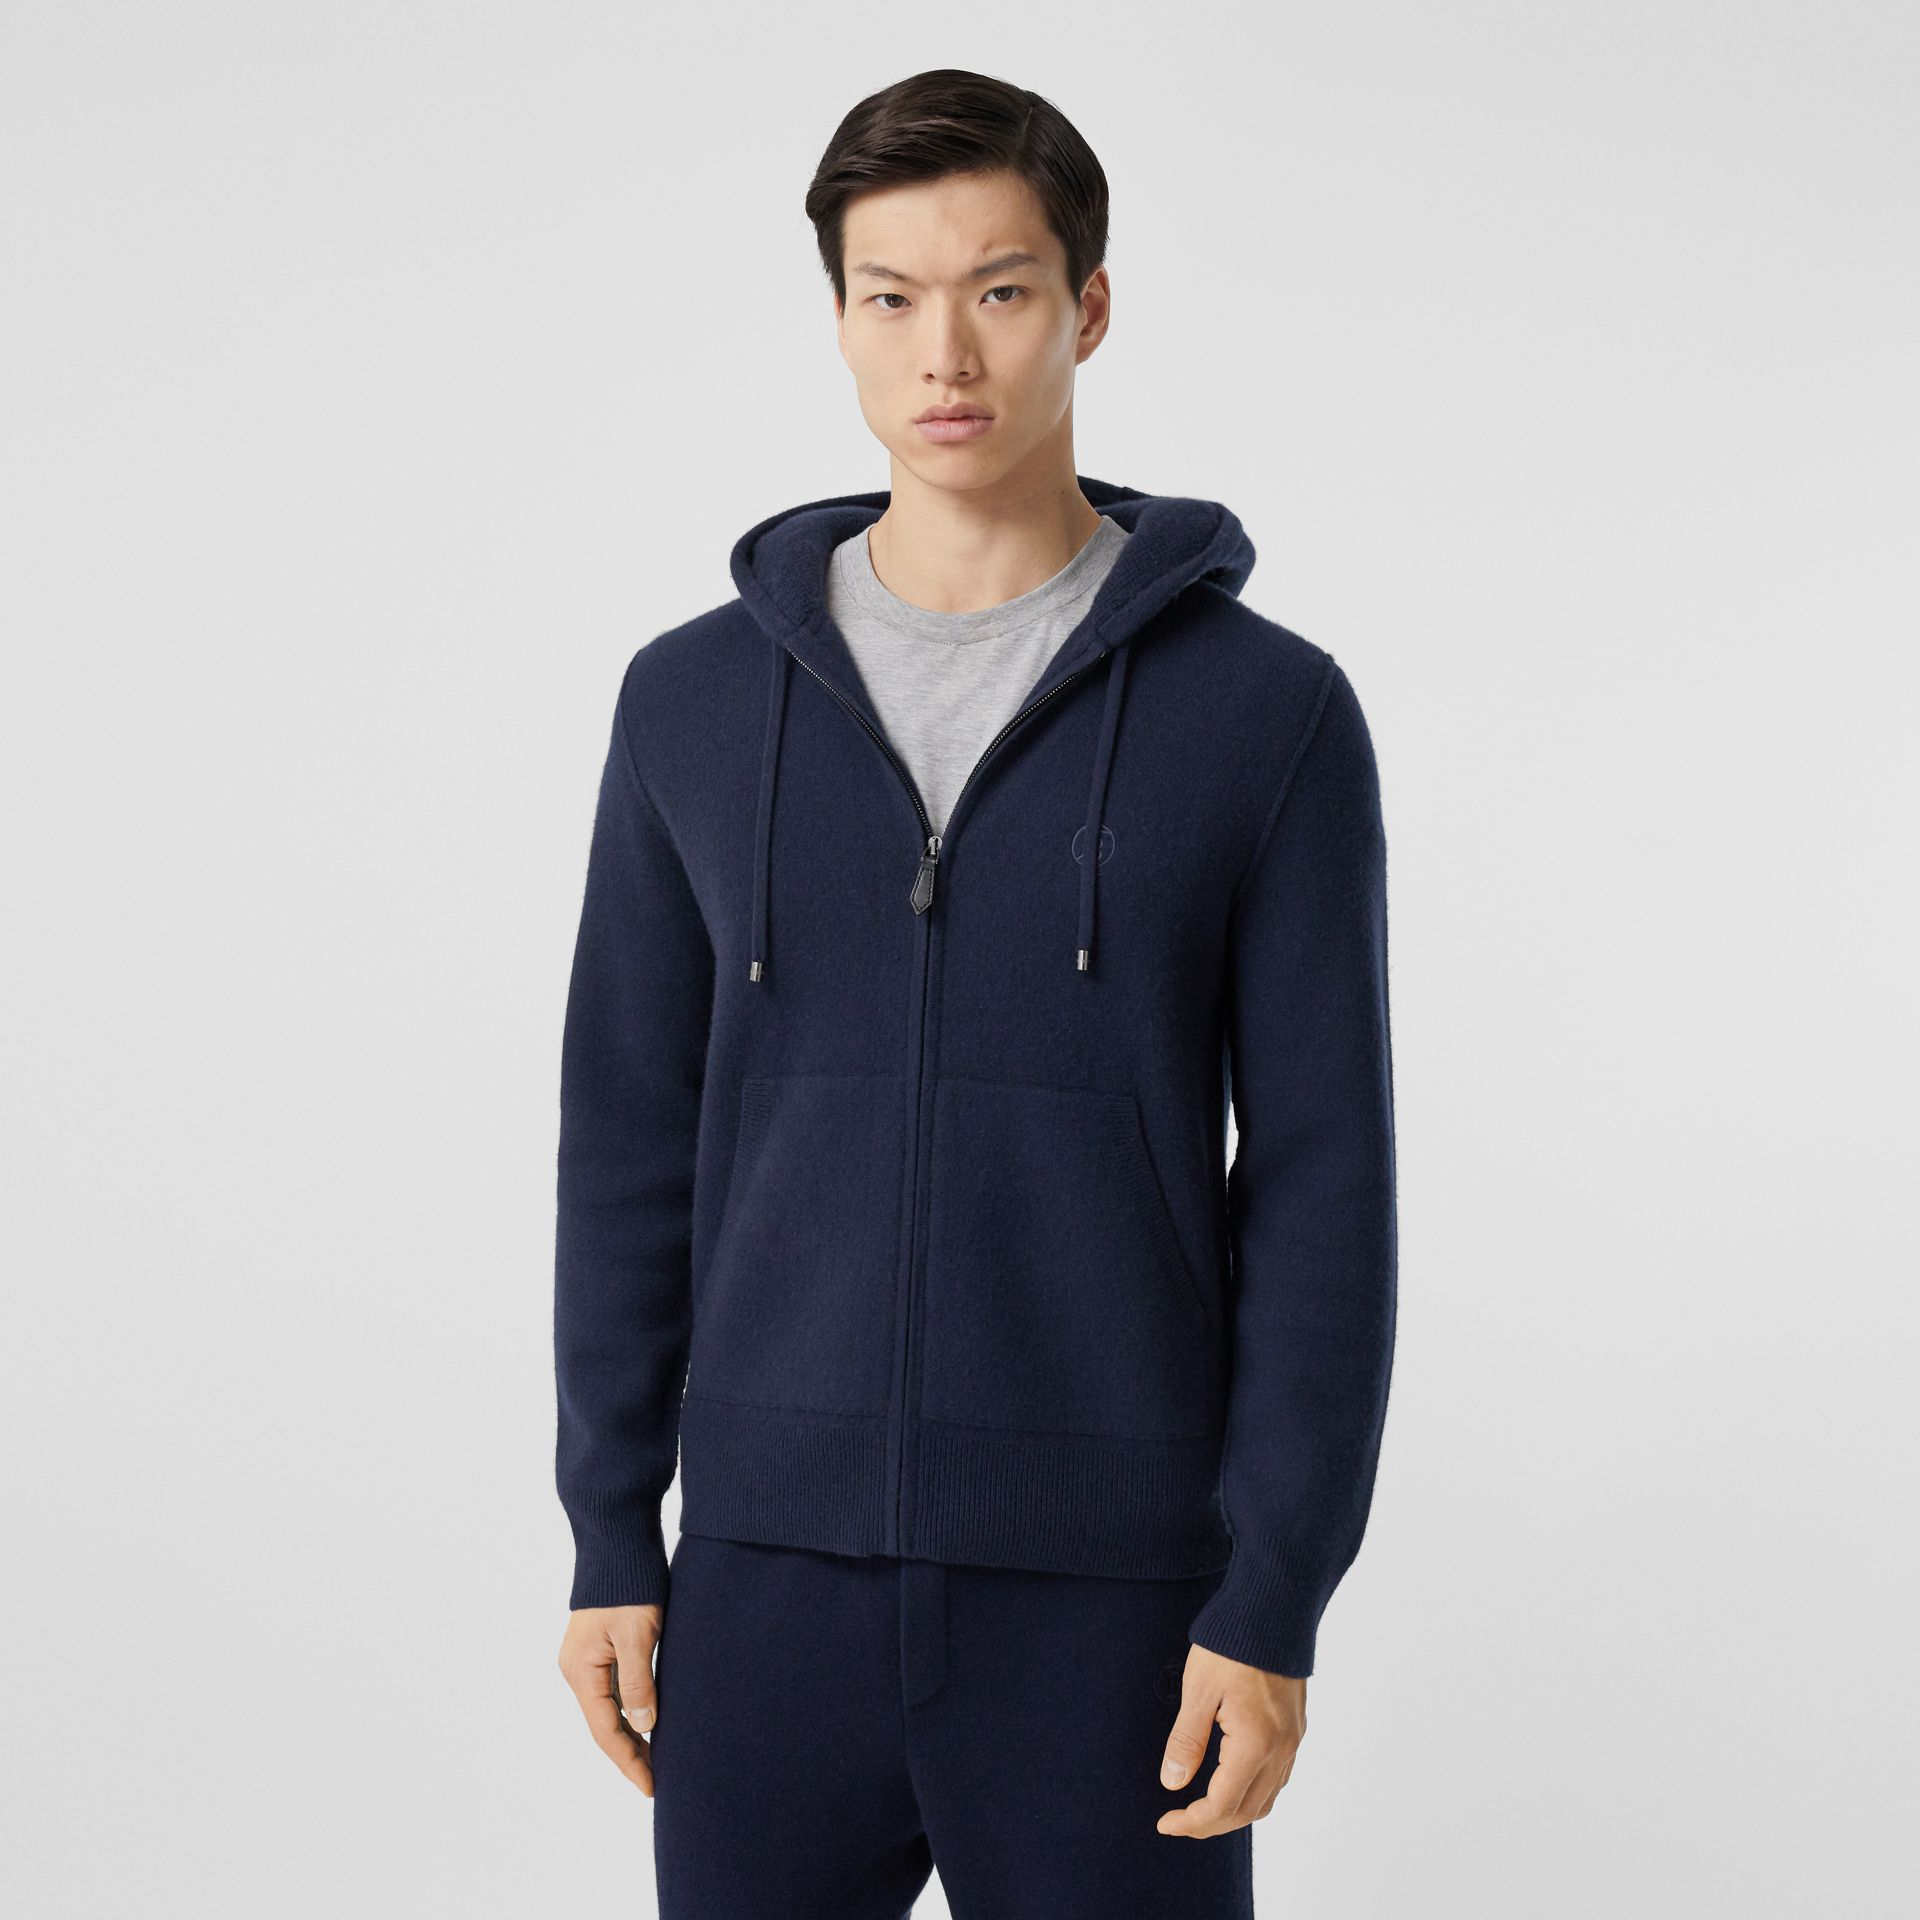 Monogram Motif Cashmere Blend Hooded Top in Navy - Men | Burberry - gallery image 0